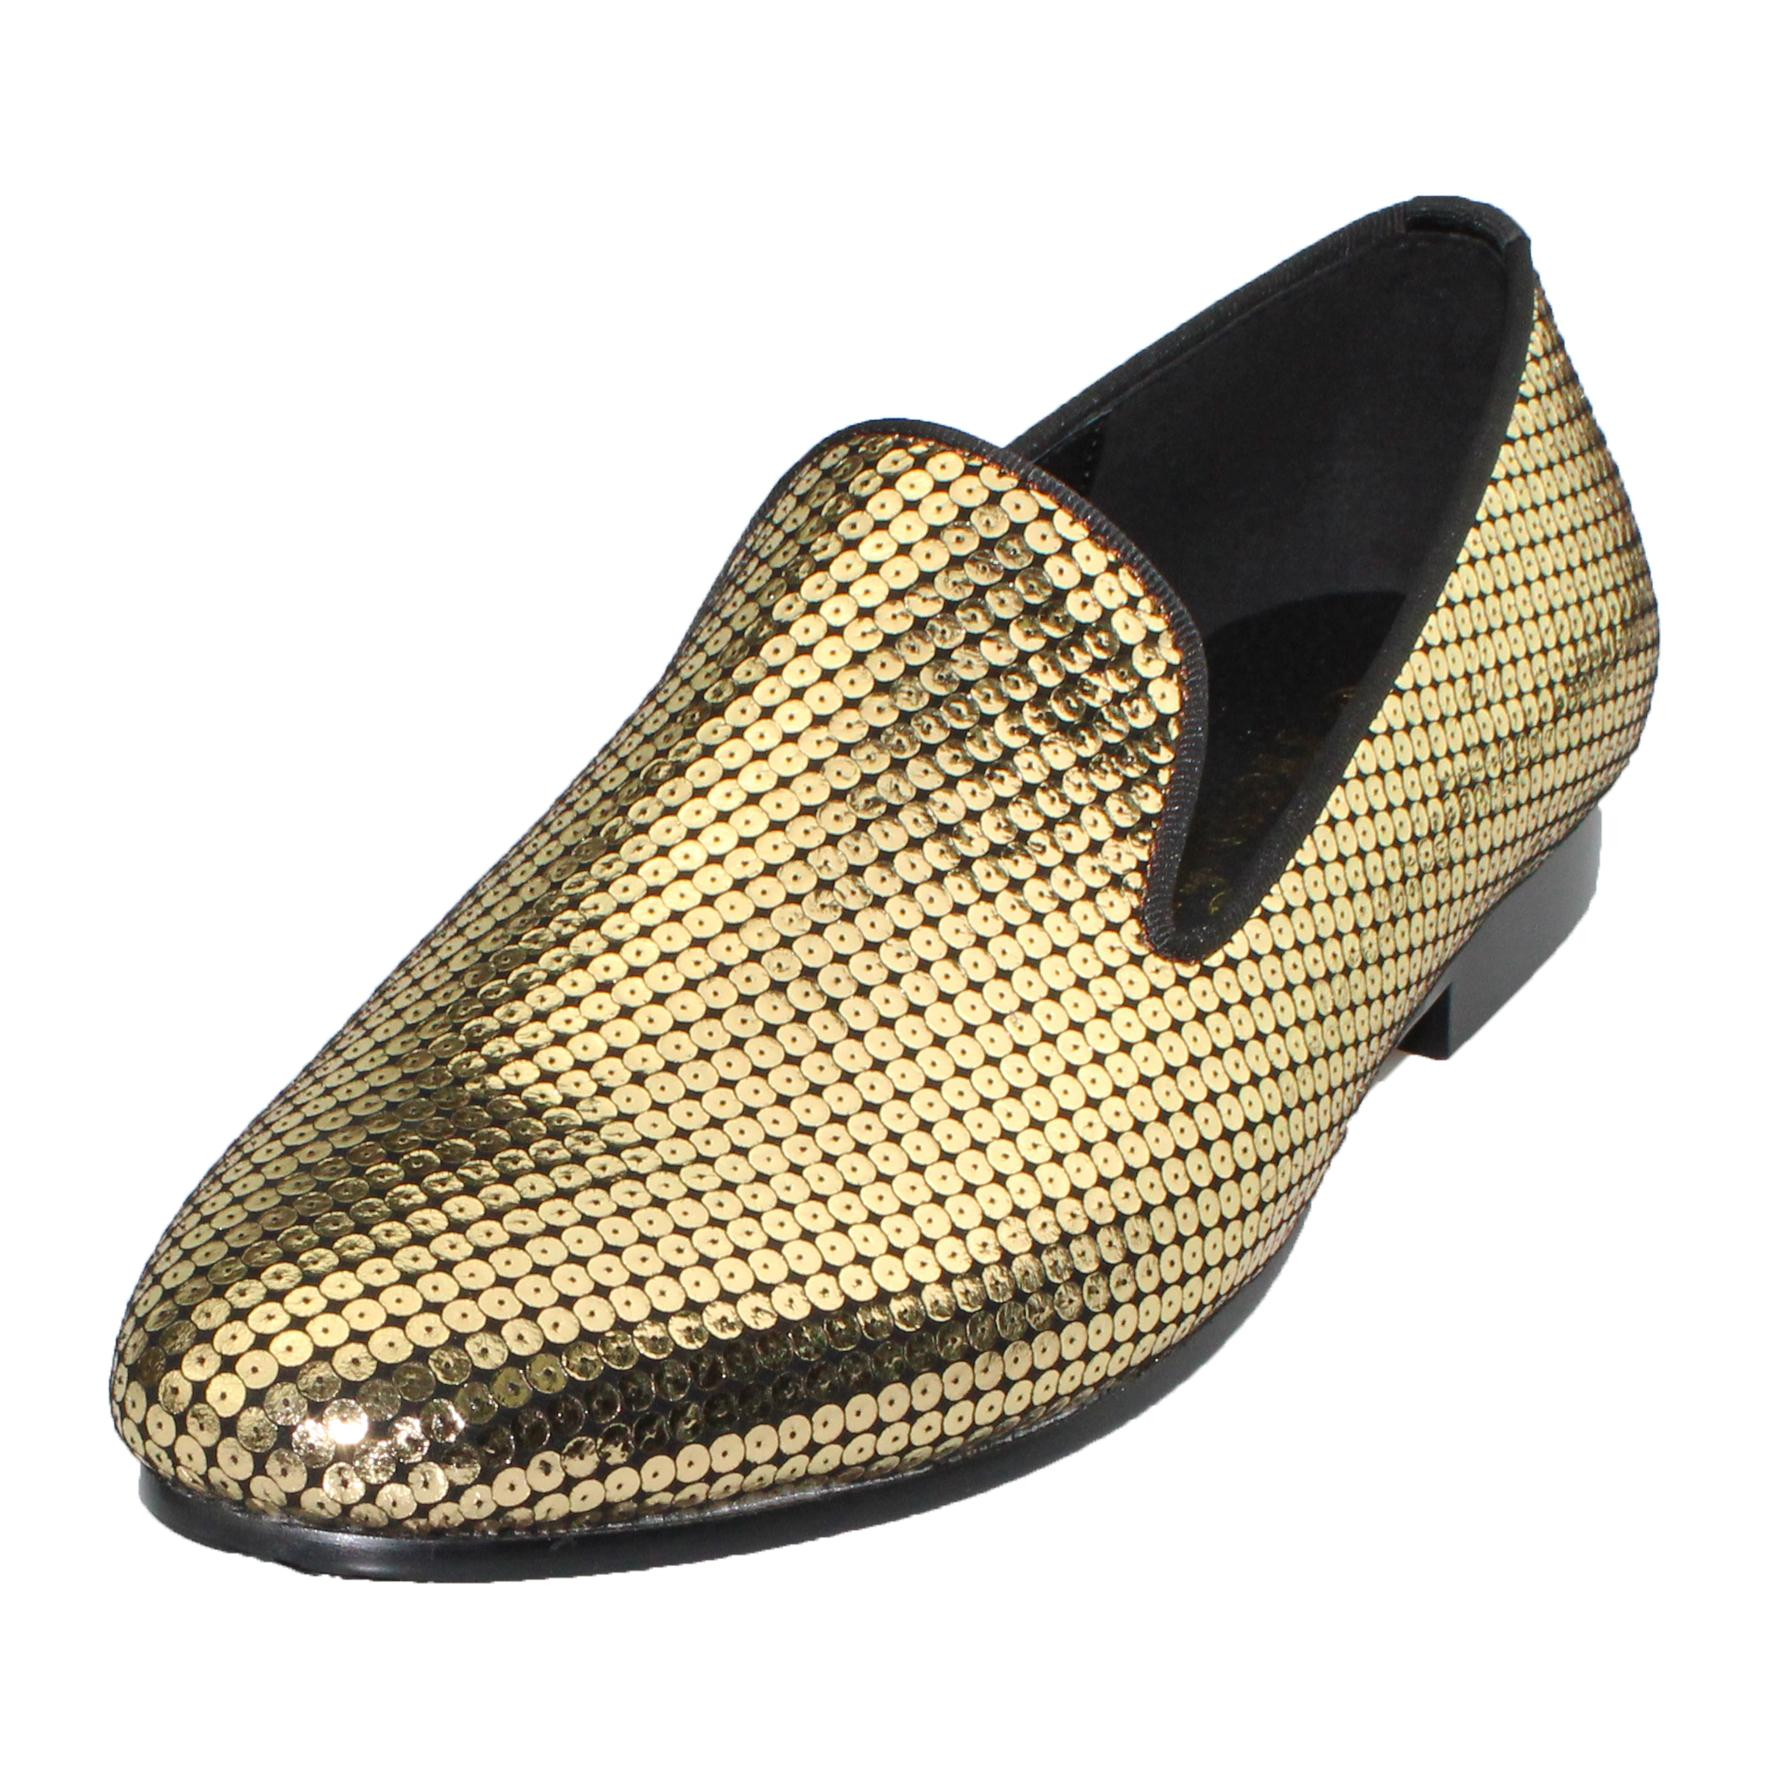 7e8b4bdd499 Harpelunde Men Gold Leather Dress Wedding Shoes New Arrival Loafer Handmade  Flats Size 6 To 14 Nude Shoes Womens Sandals From Harpelunde